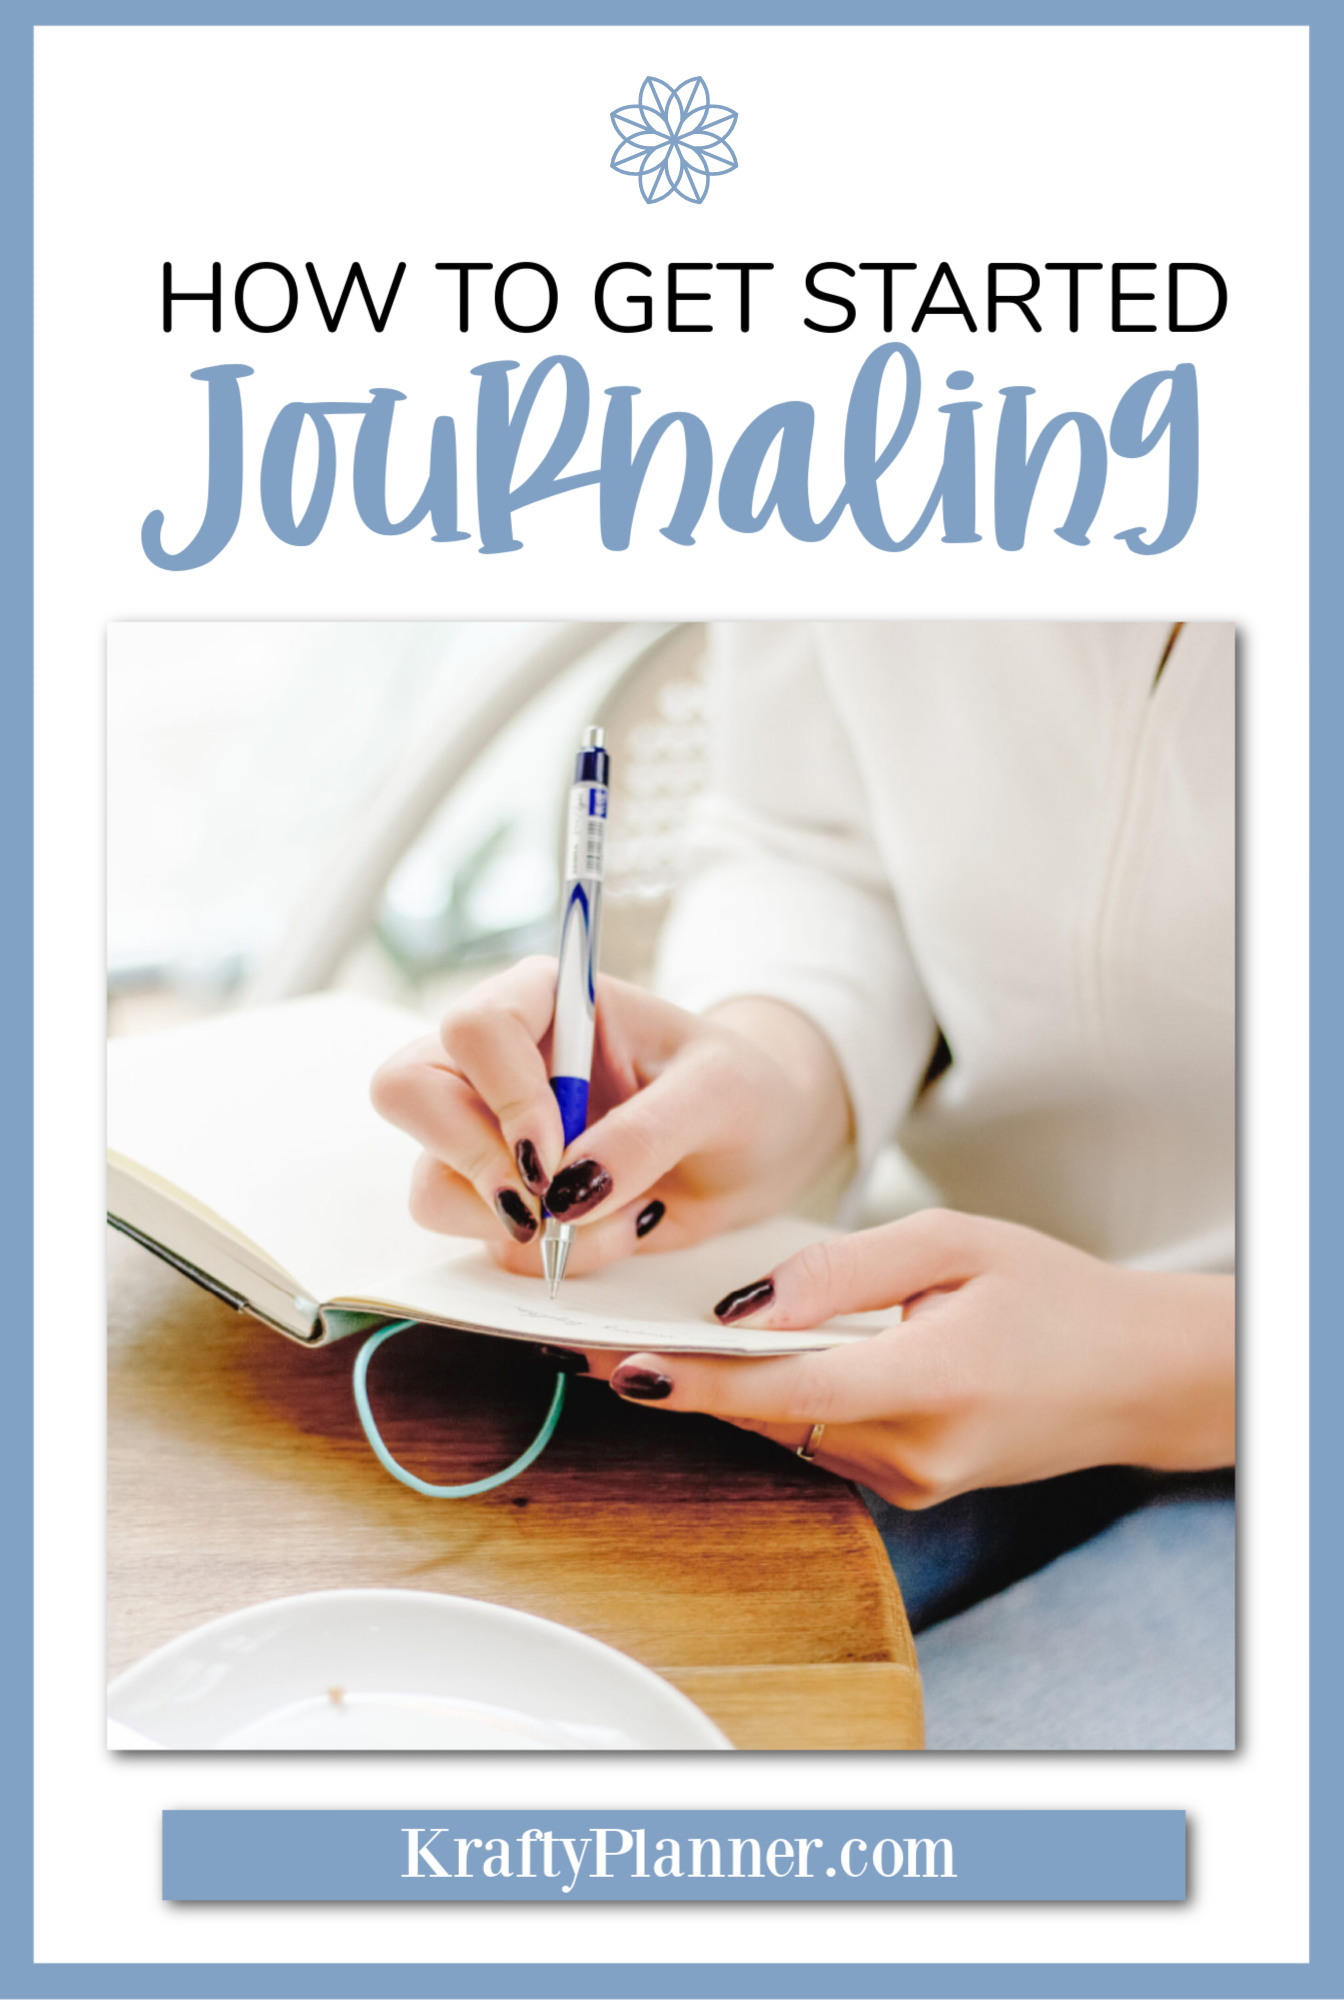 How to Get Started Writing a Journal PIN.png